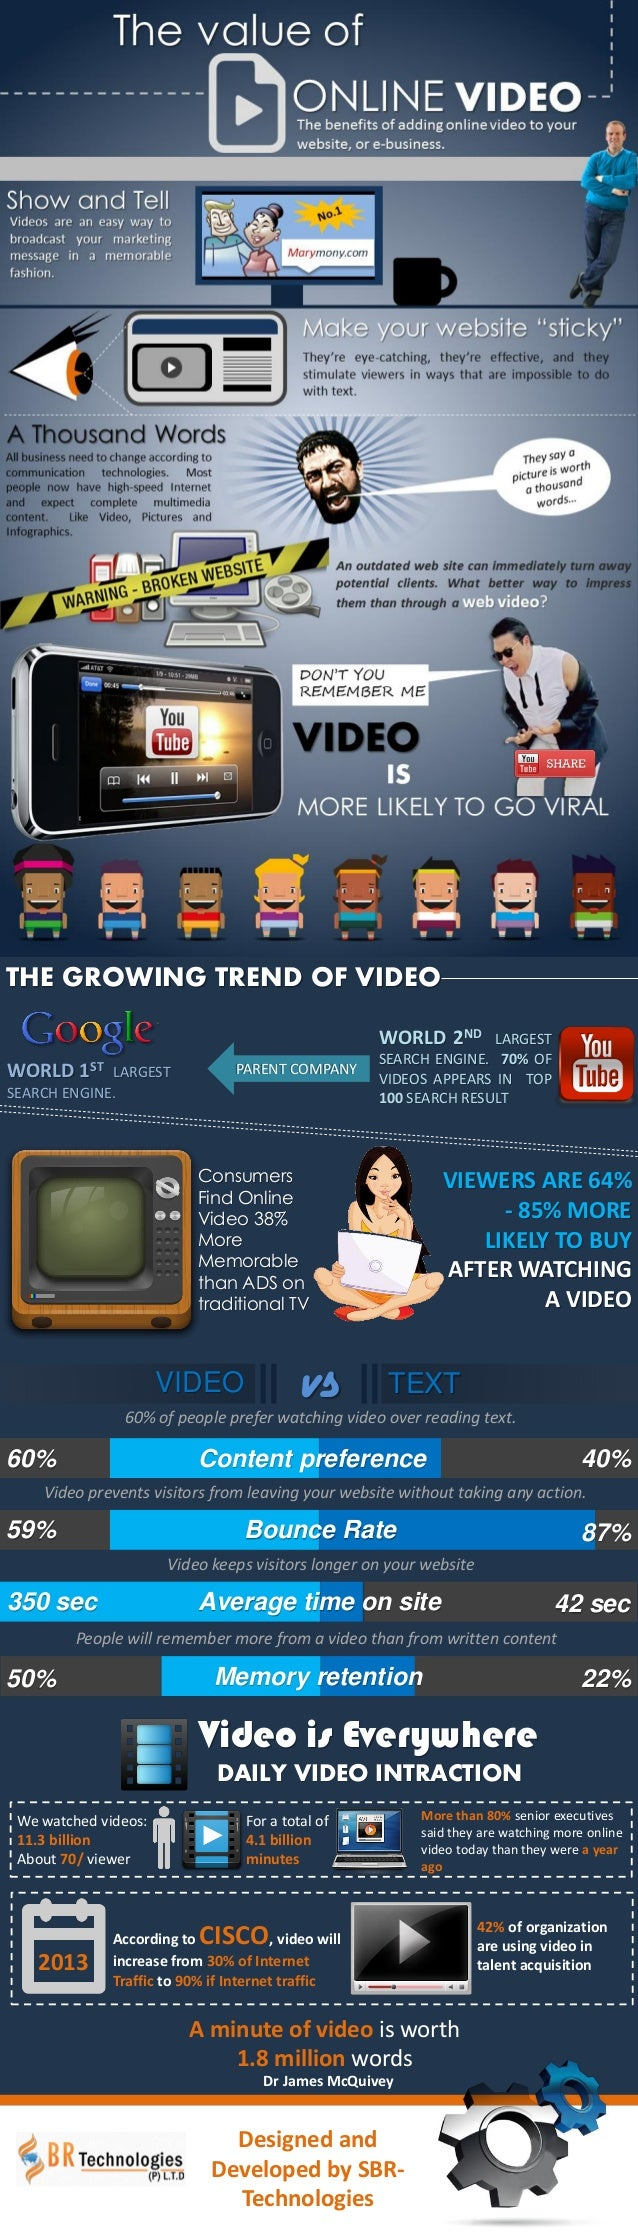 THE GROWING TREND OF VIDEO WORLD 2ND LARGEST SEARCH ENGINE. 70% OF VIDEOS APPEARS IN TOP 100 SEARCH RESULT PARENT COMPANYW...